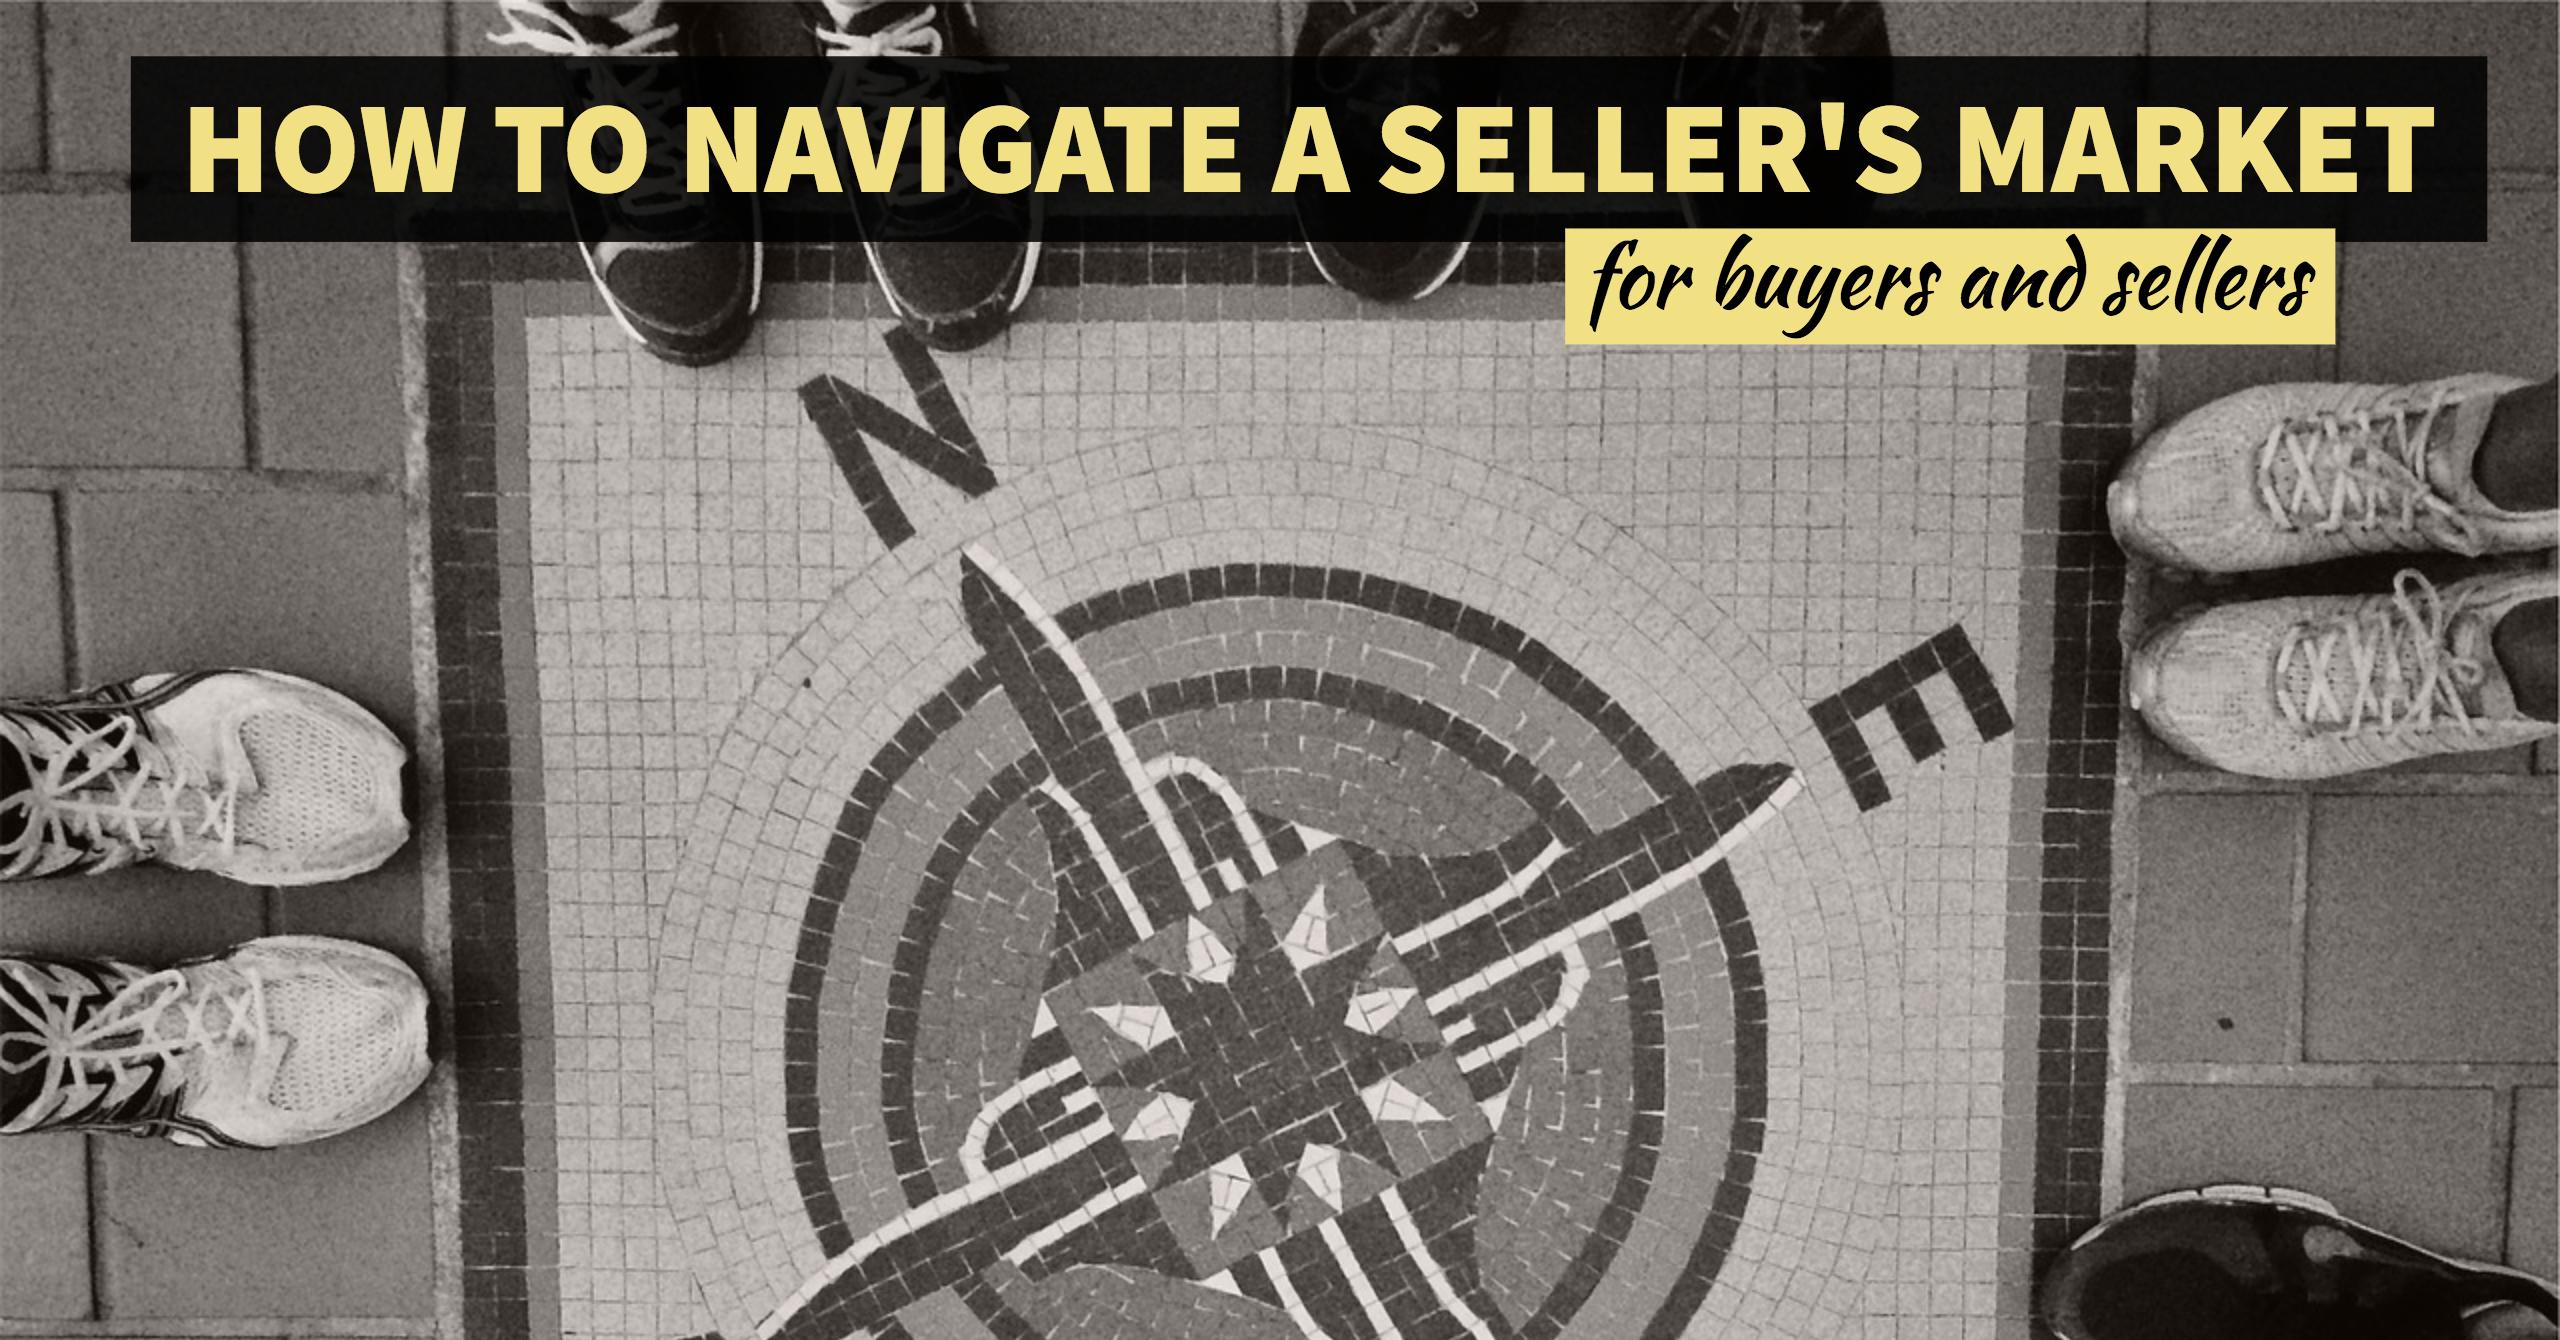 How to Navigate a Seller's Market for Buyers and Sellers